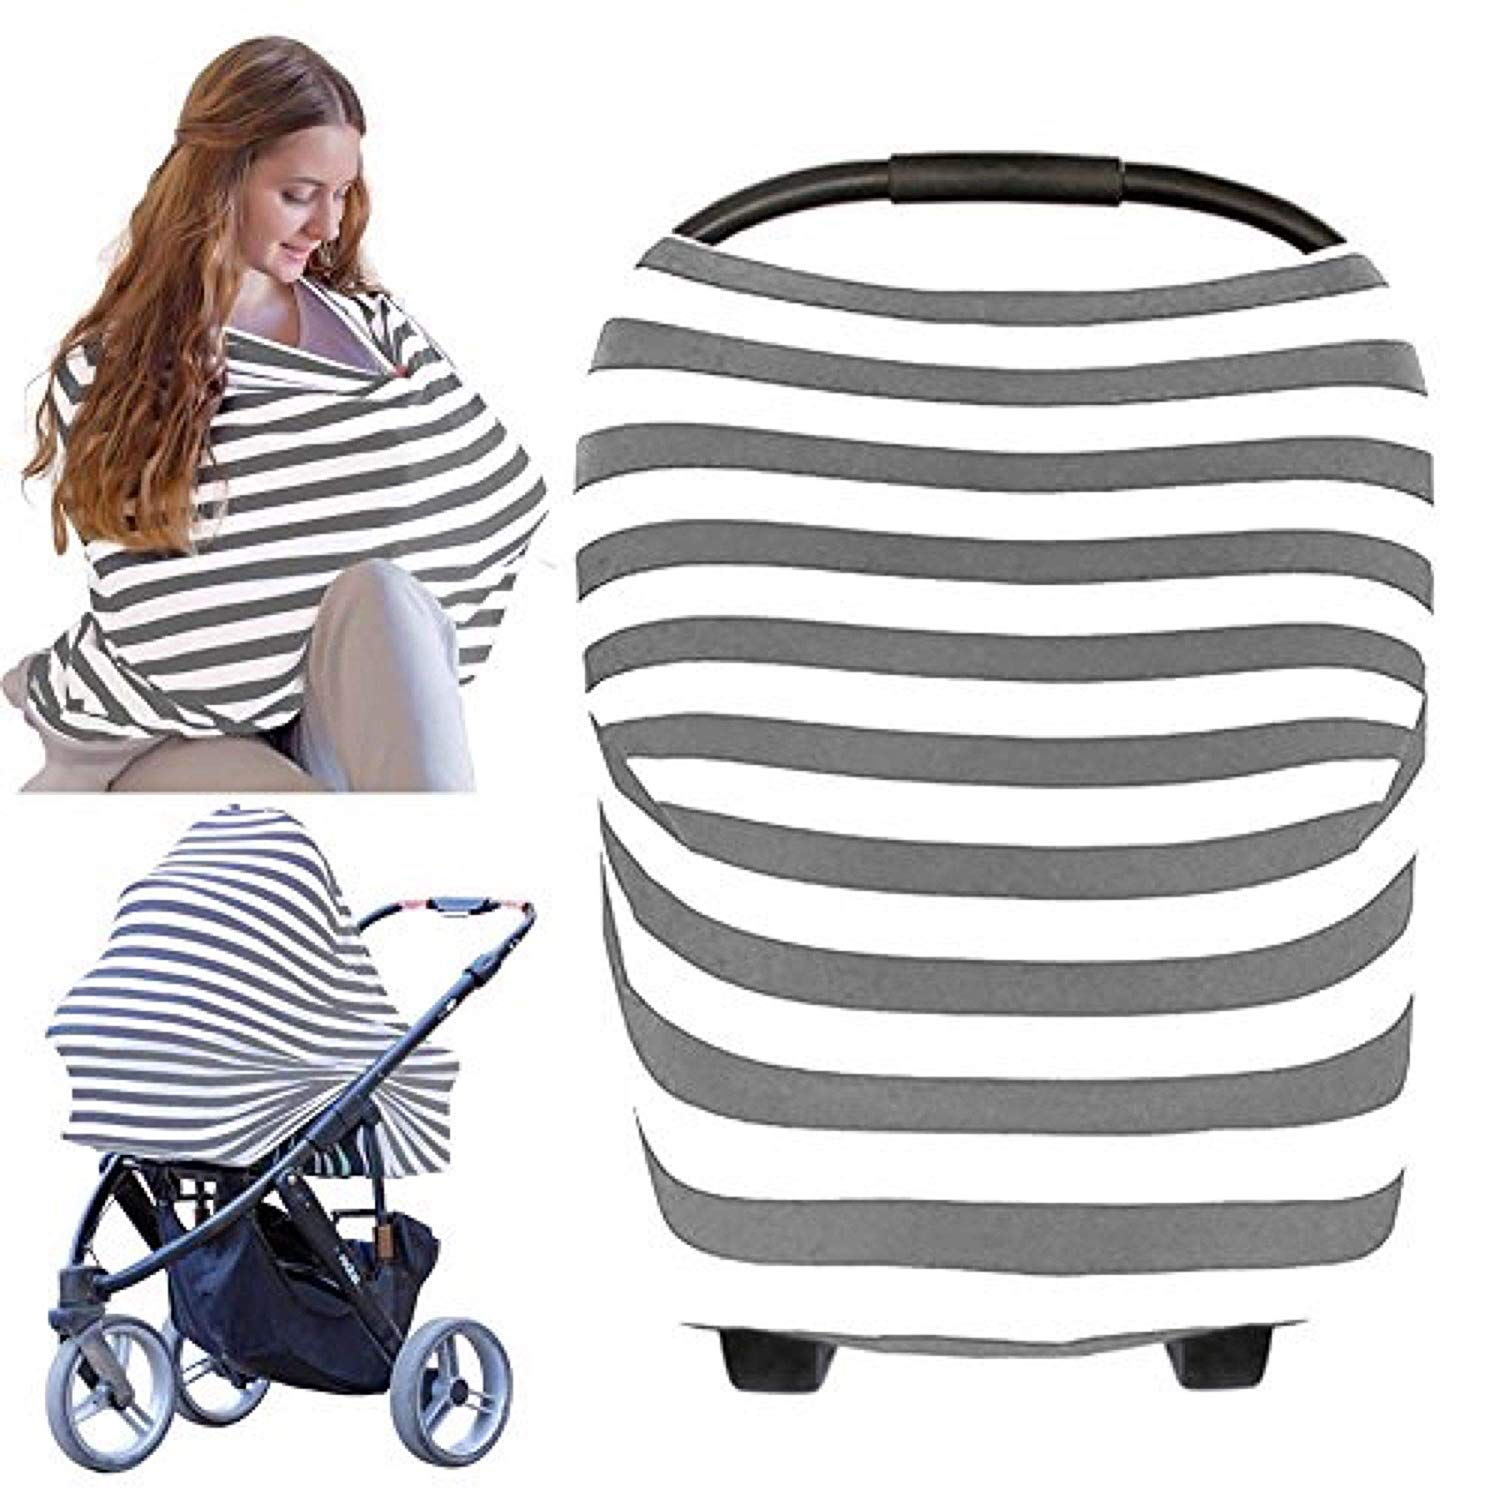 Carseat Canopy Cover - Baby Car Seat Canopy All-in-1 Nursing Breastfeeding Covers Up Baby Car Seat Canopies For Boys Girls St